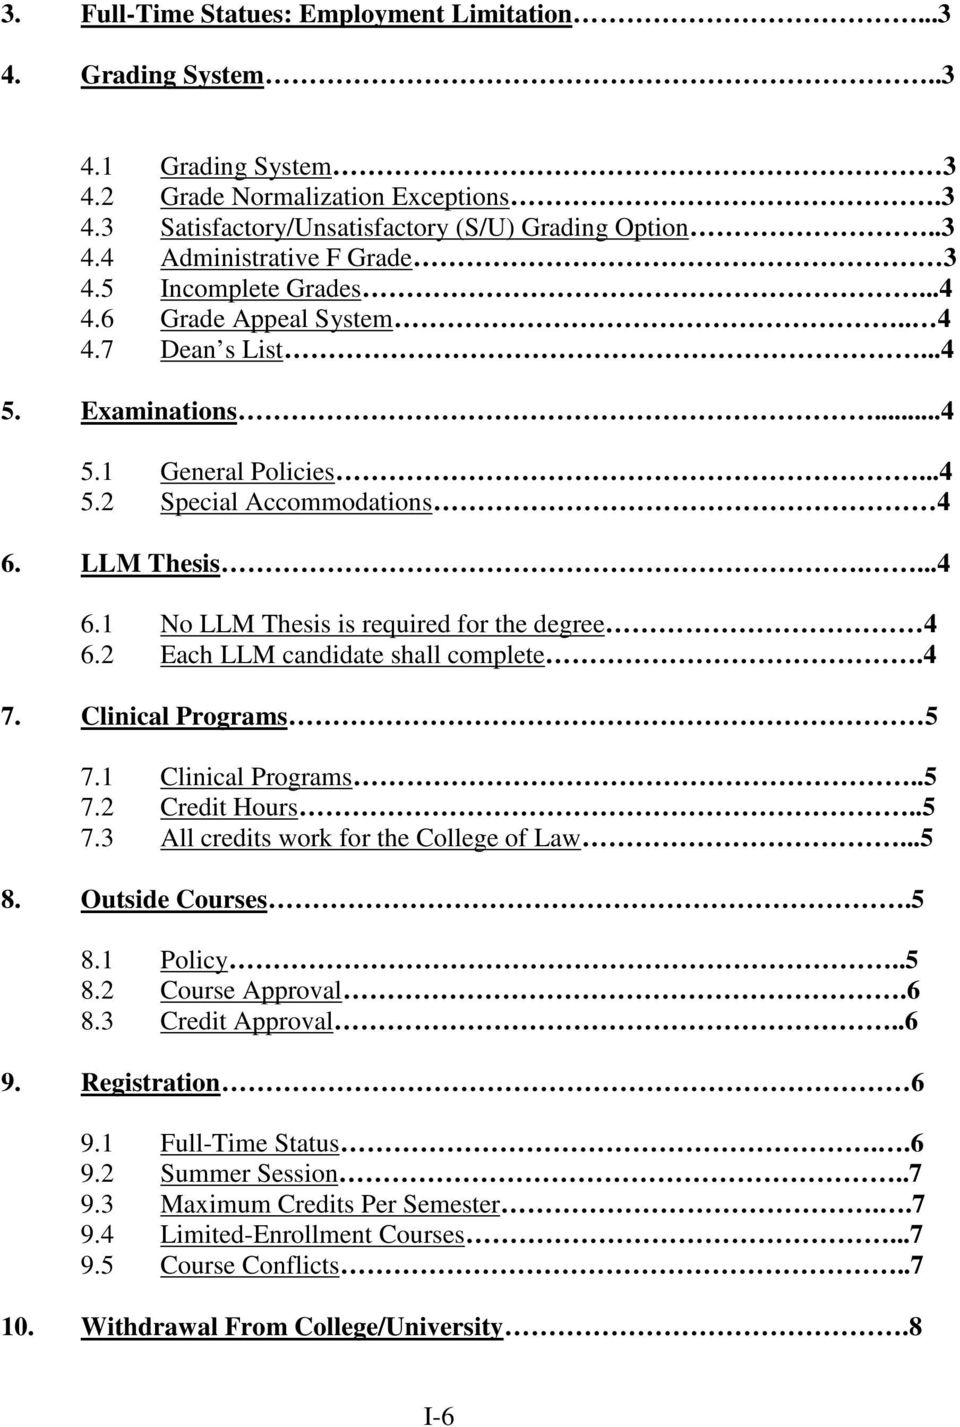 2 Each LLM candidate shall complete.4 7. Clinical Programs 5 7.1 Clinical Programs..5 7.2 Credit Hours..5 7.3 All credits work for the College of Law...5 8. Outside Courses.5 8.1 Policy..5 8.2 Course Approval.